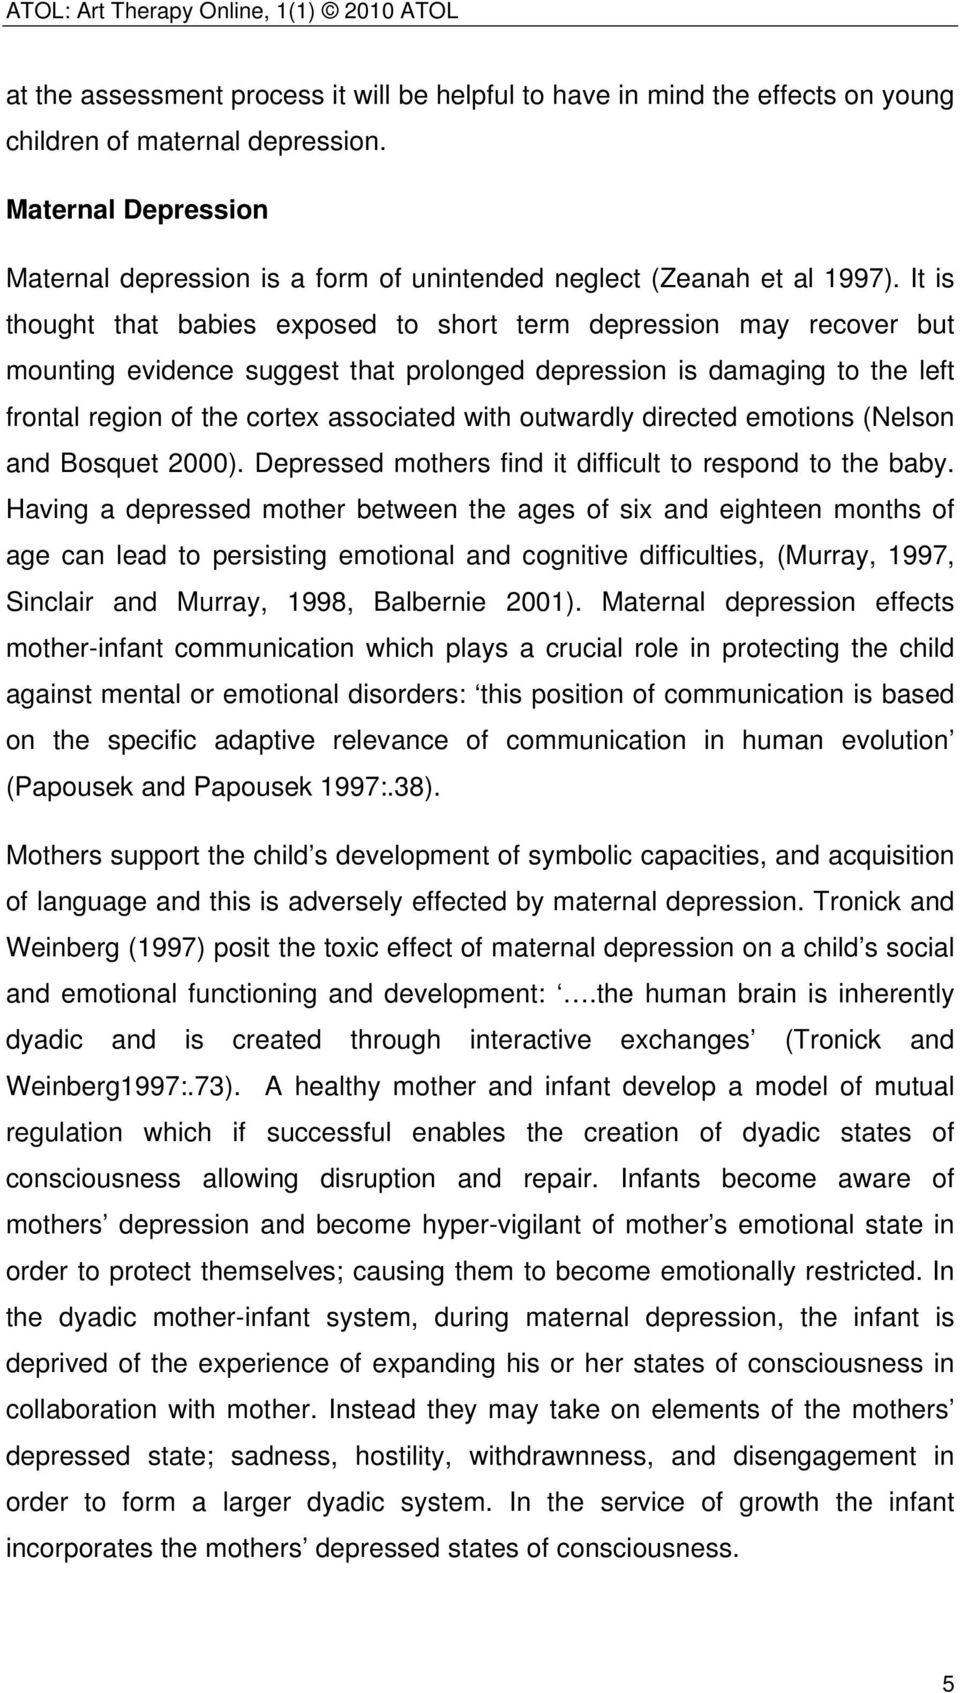 It is thought that babies exposed to short term depression may recover but mounting evidence suggest that prolonged depression is damaging to the left frontal region of the cortex associated with